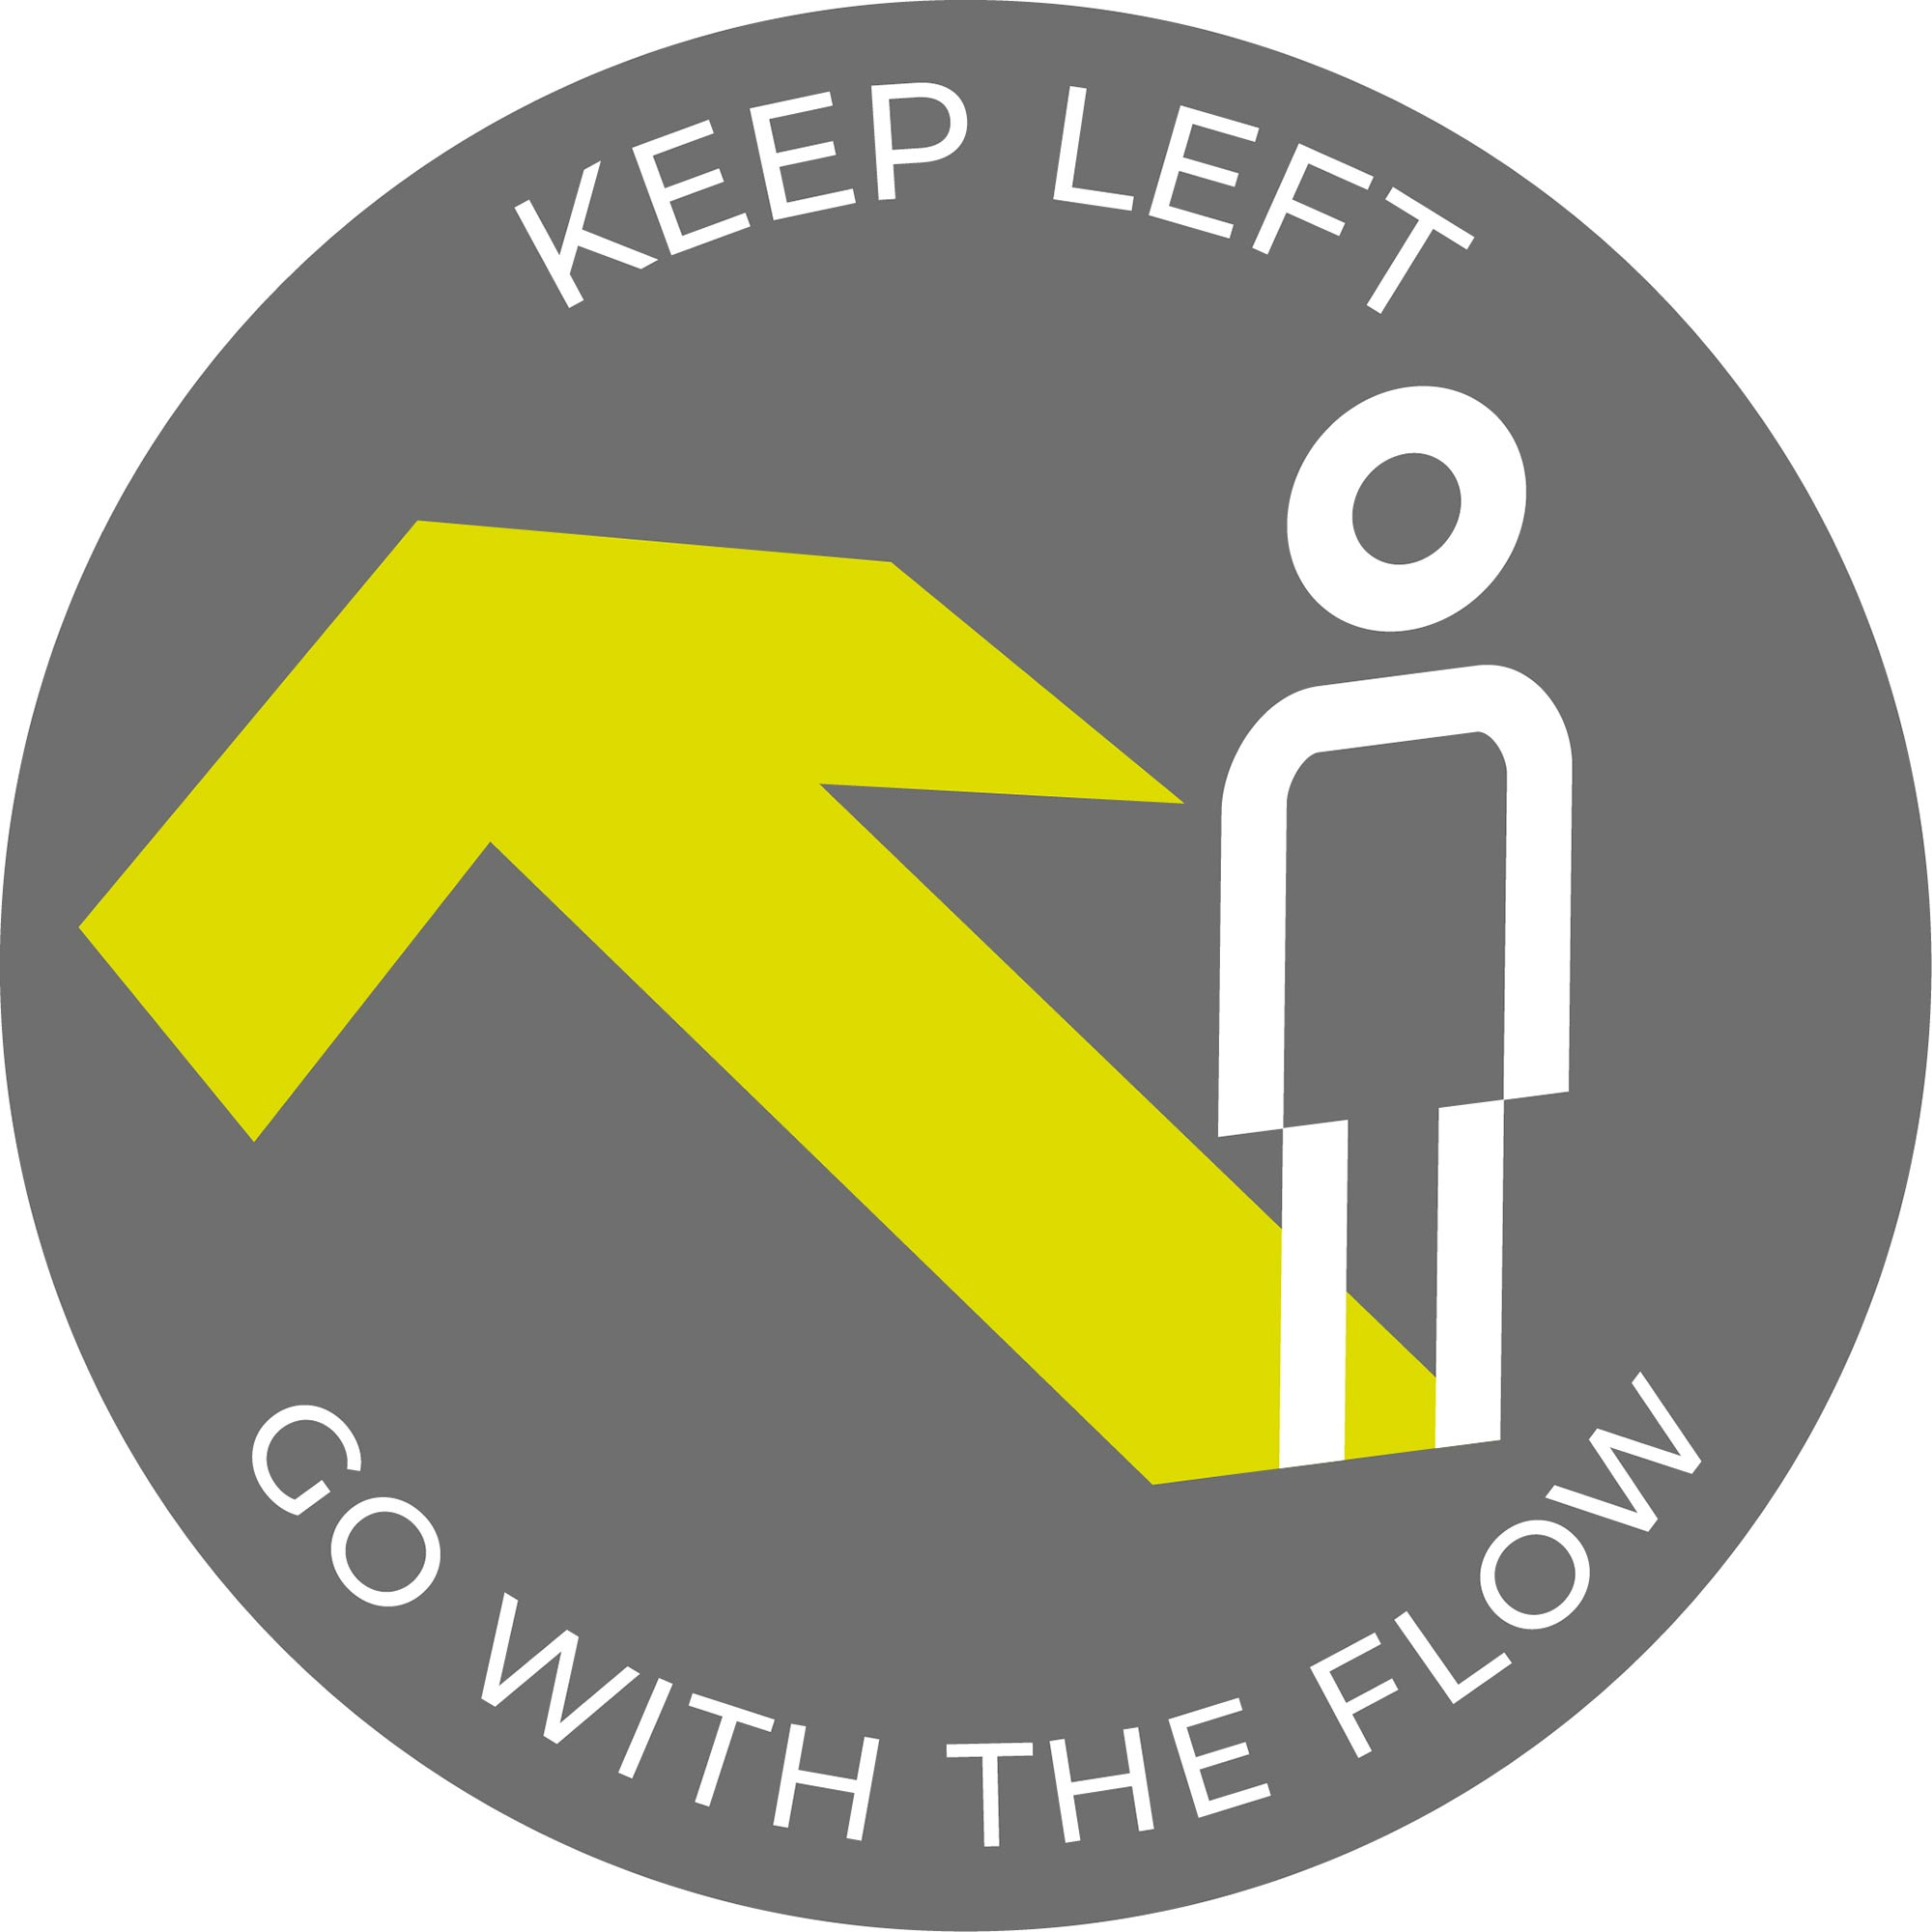 Go with the flow - Grey sticker